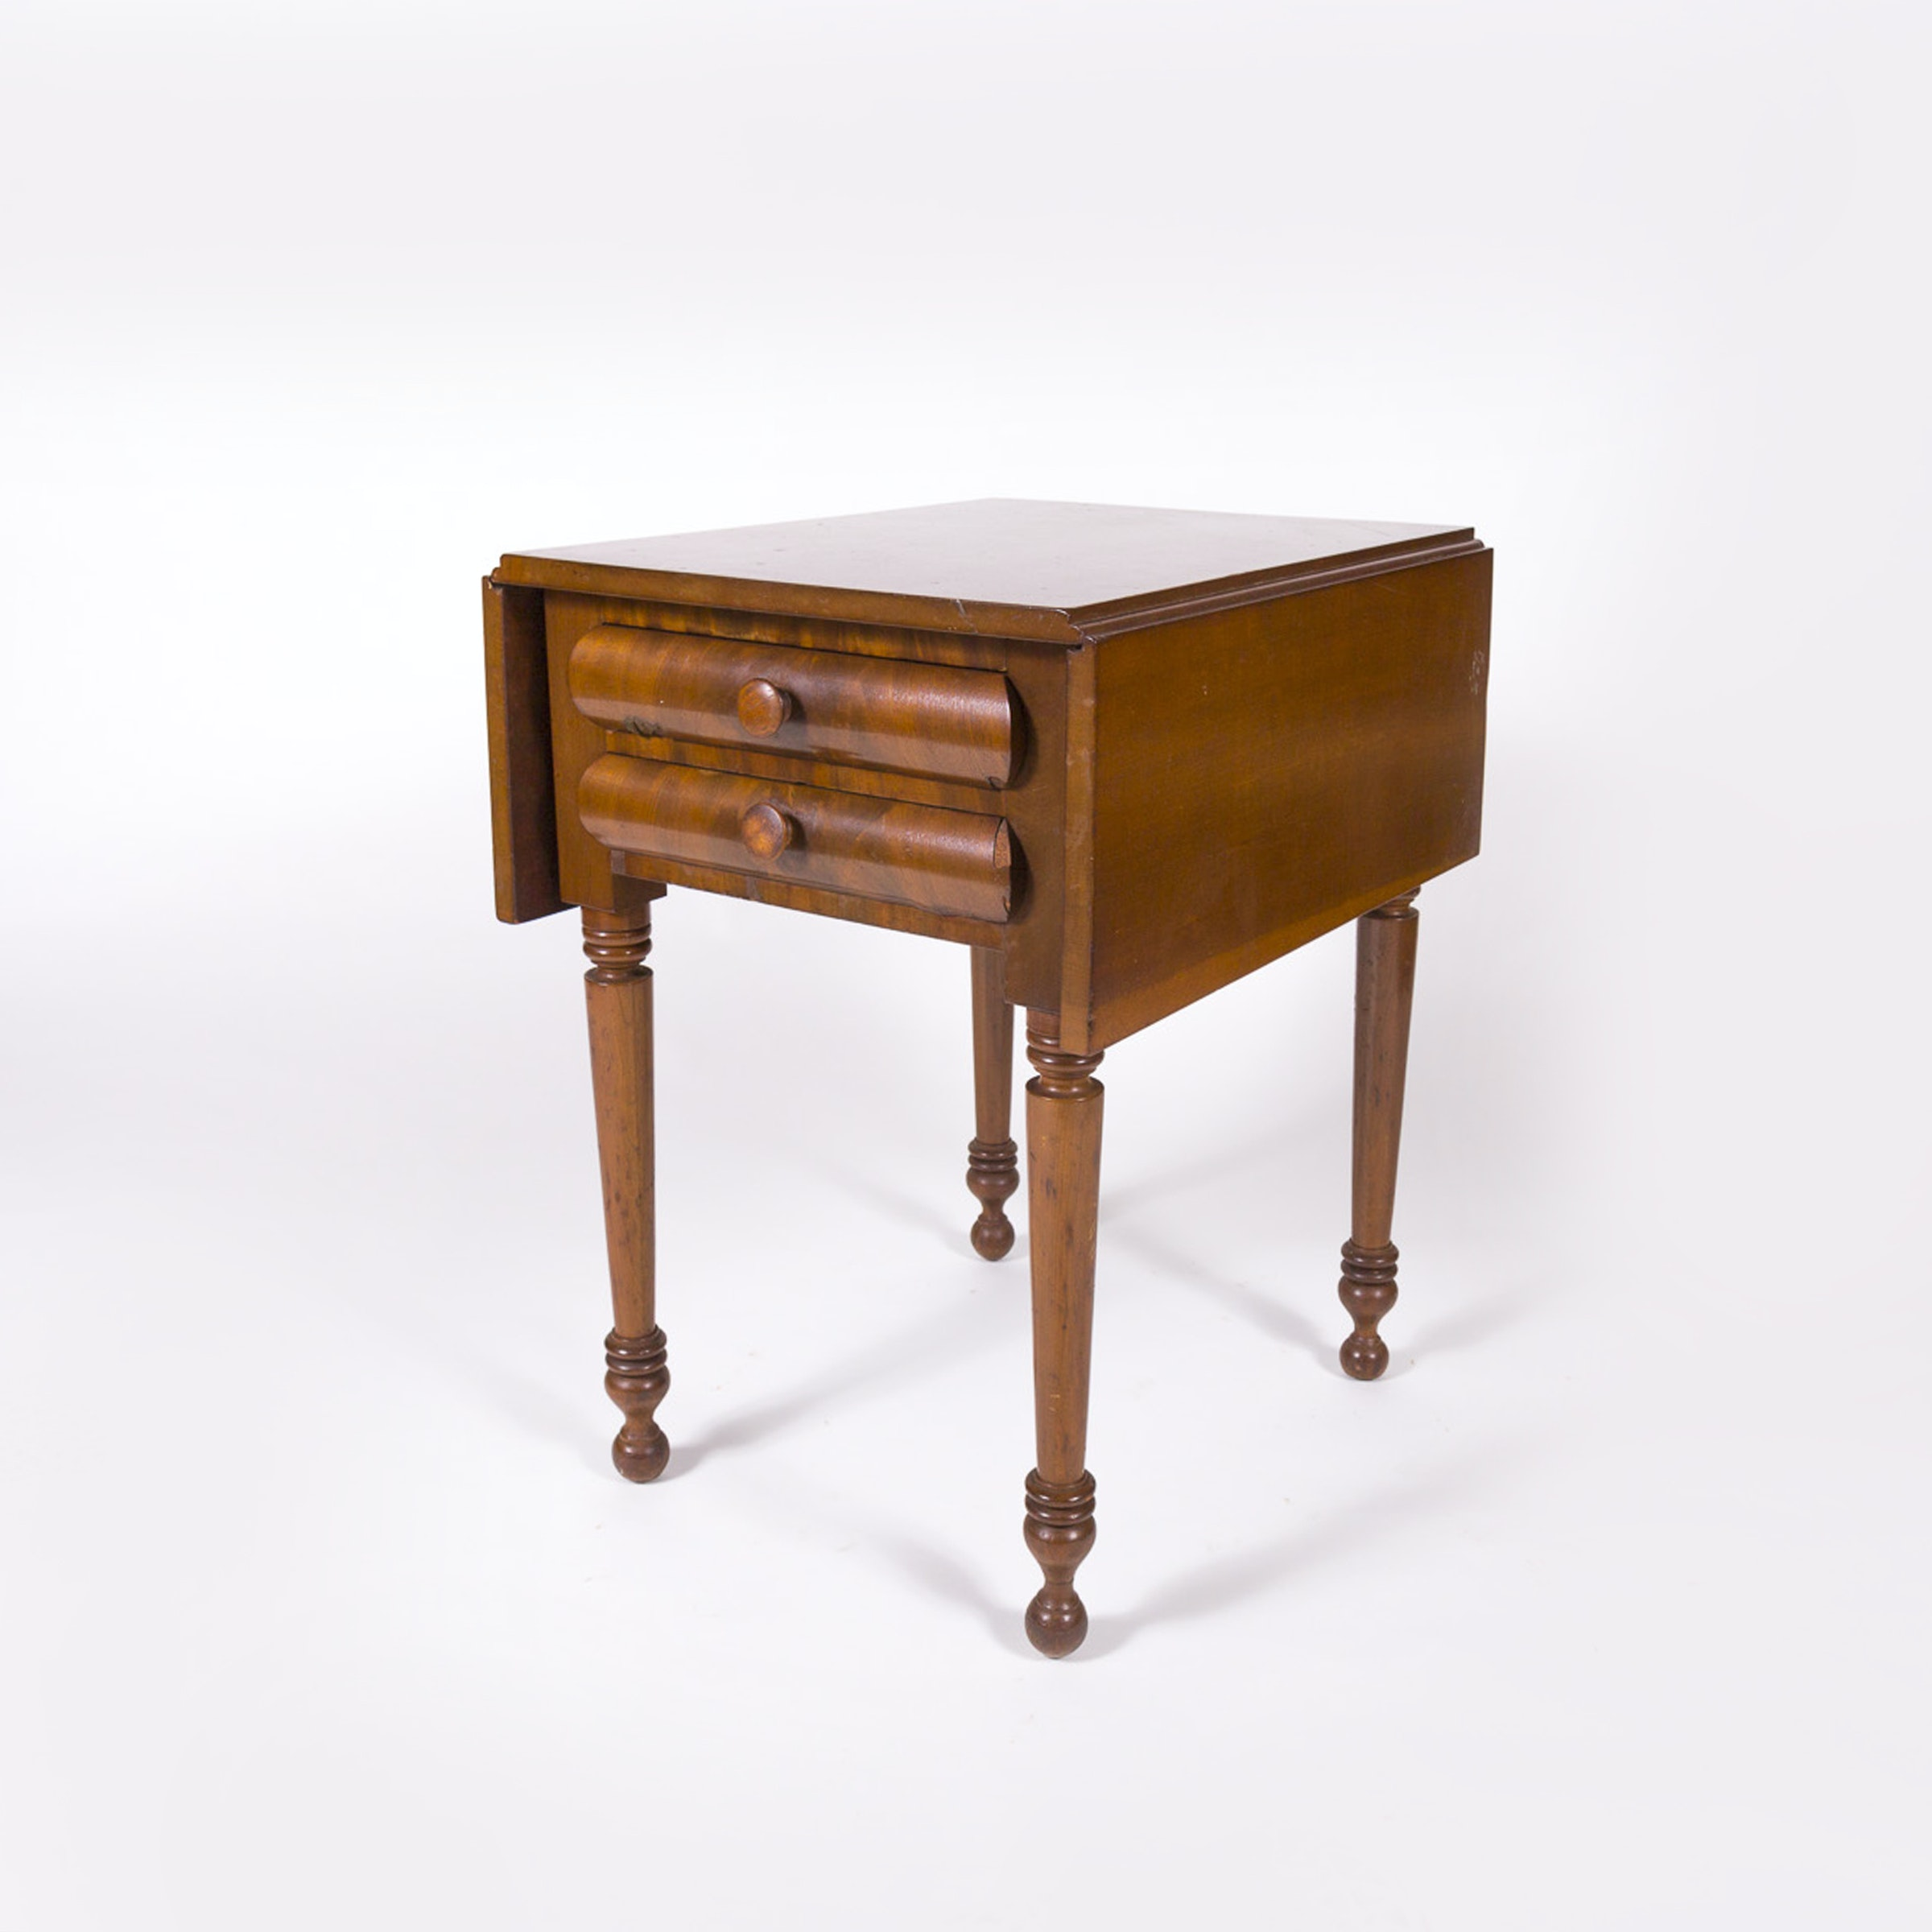 Antique Early American Cherry and Mahogany Drop-Leaf Table